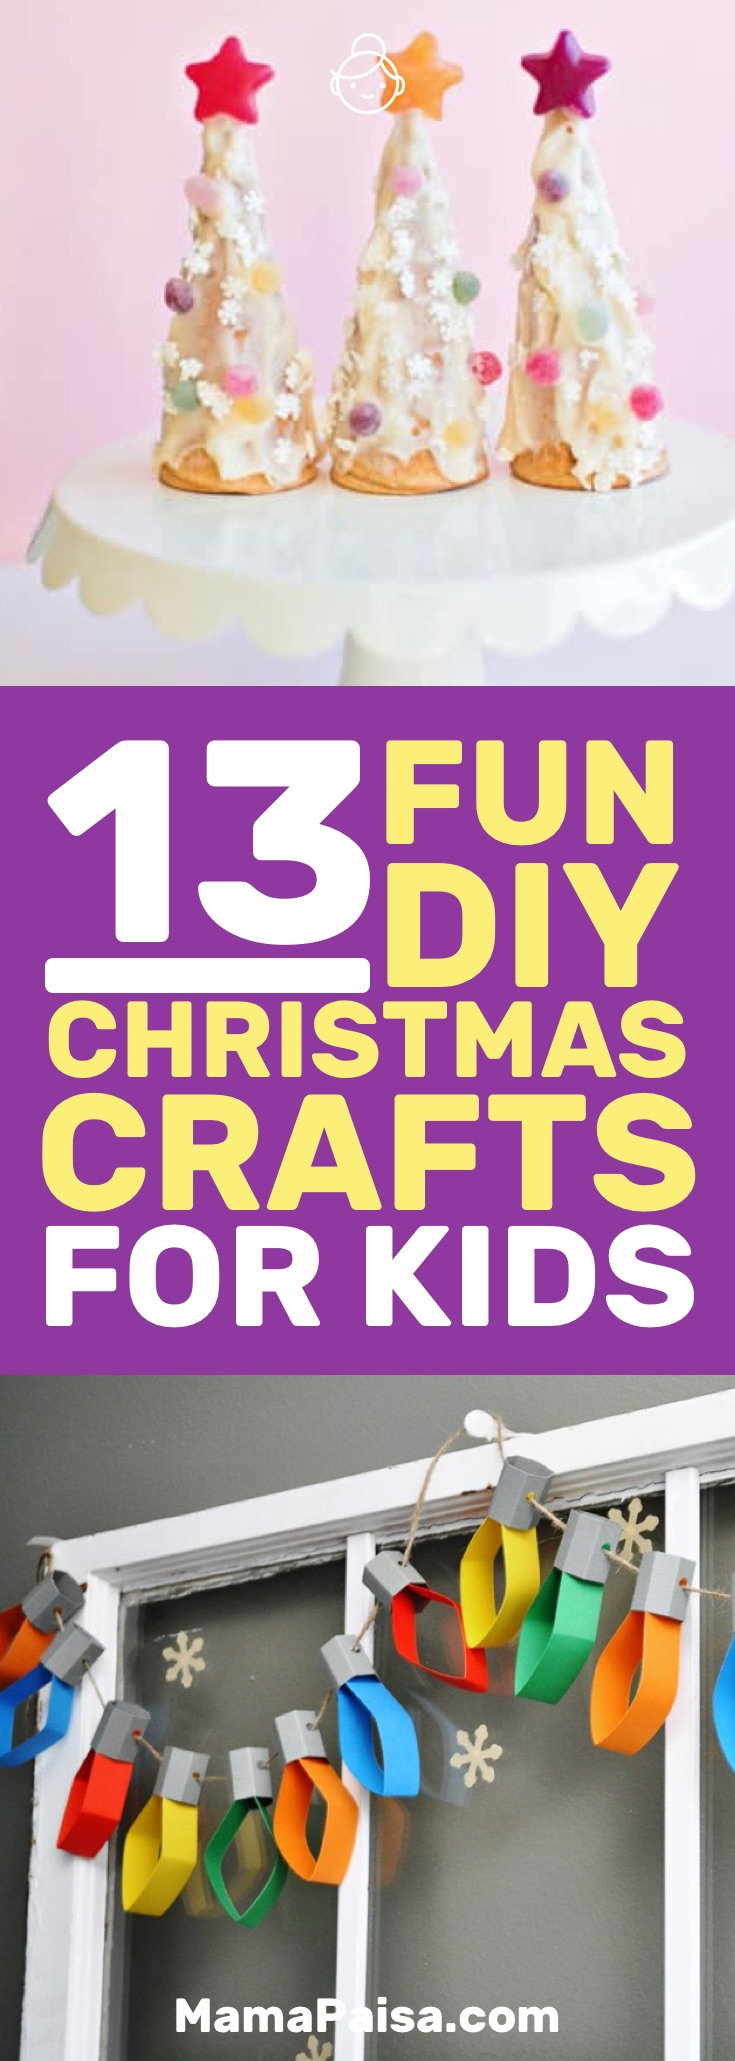 I was on the lookout for Christmas crafts for kids to make and I found these awesome DIY Christmas crafts. Definitely giving them a shot.